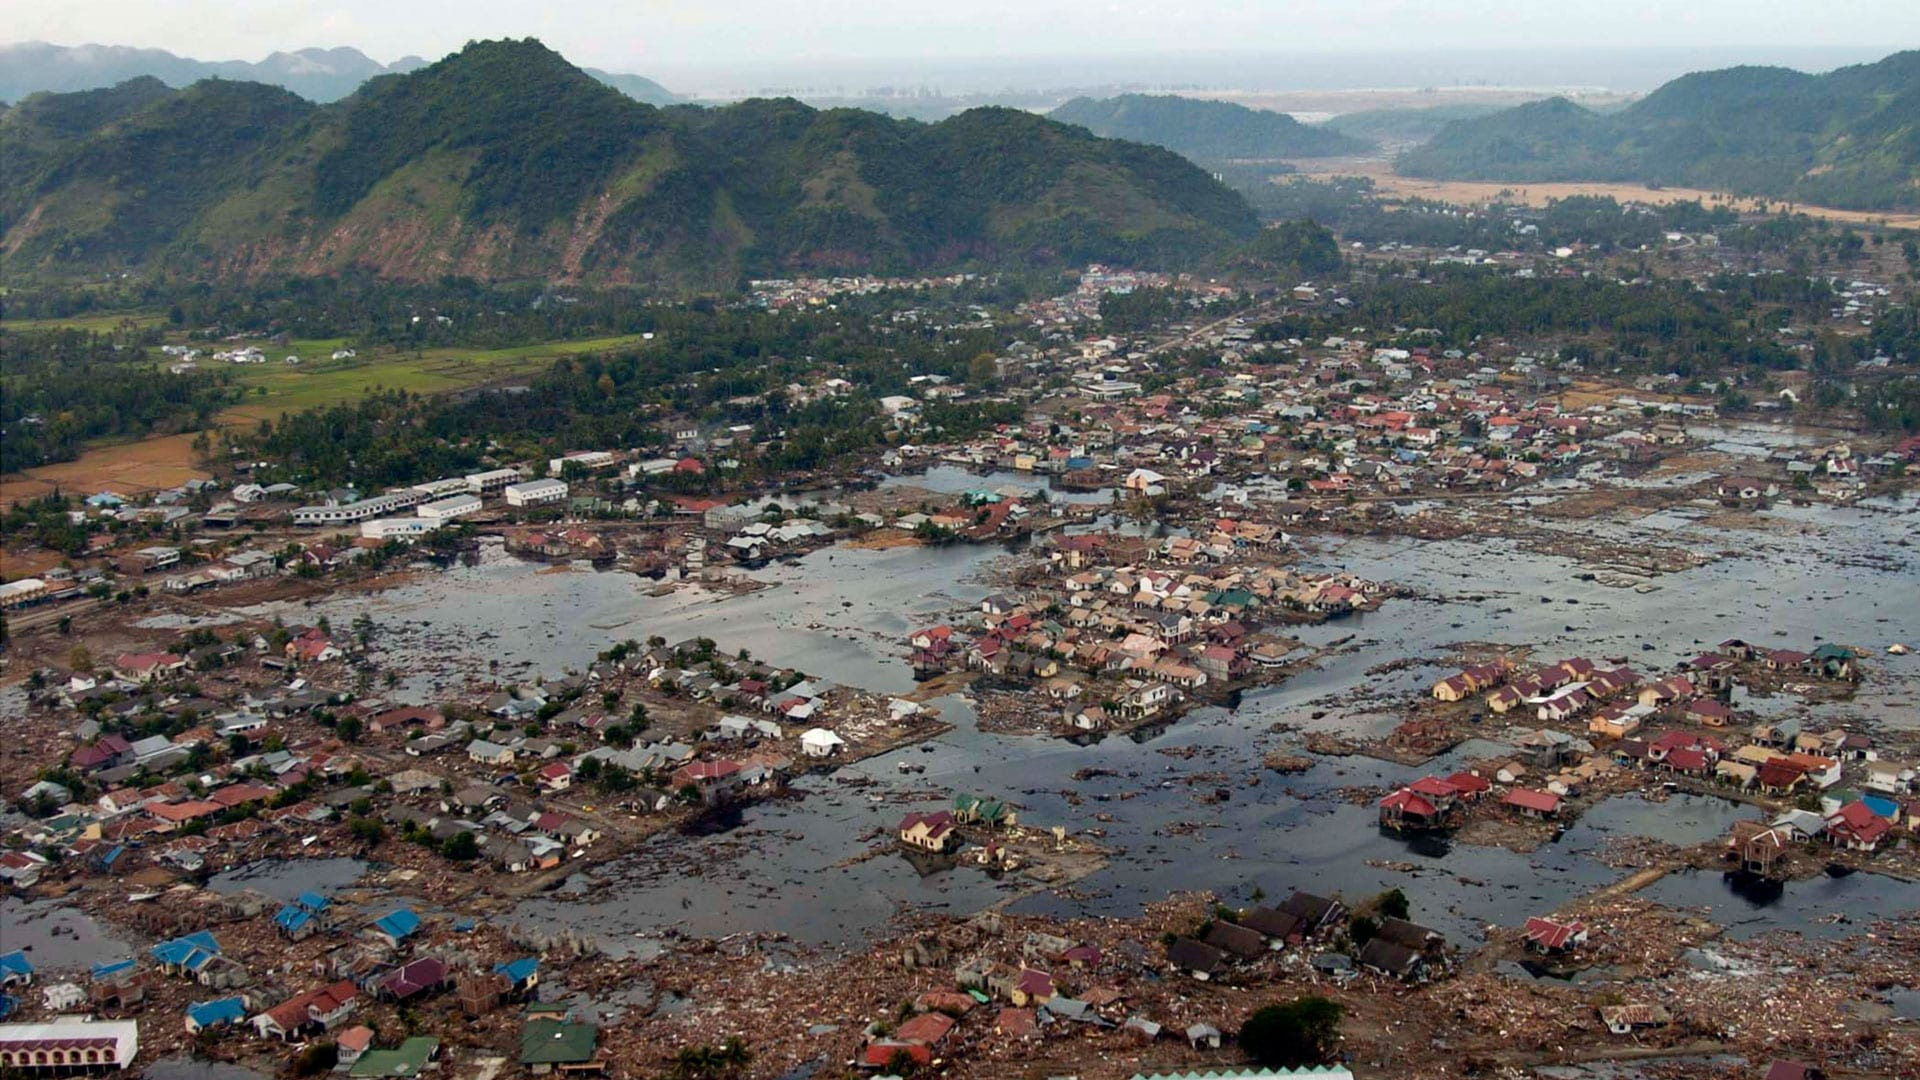 A village near the coast of Sumatra lays in ruin after the 2004 earthquake and tsunami that struck South East Asia. (U.S. Navy photo by Photographer's Mate 2nd Class Philip A. McDaniel (RELEASED)